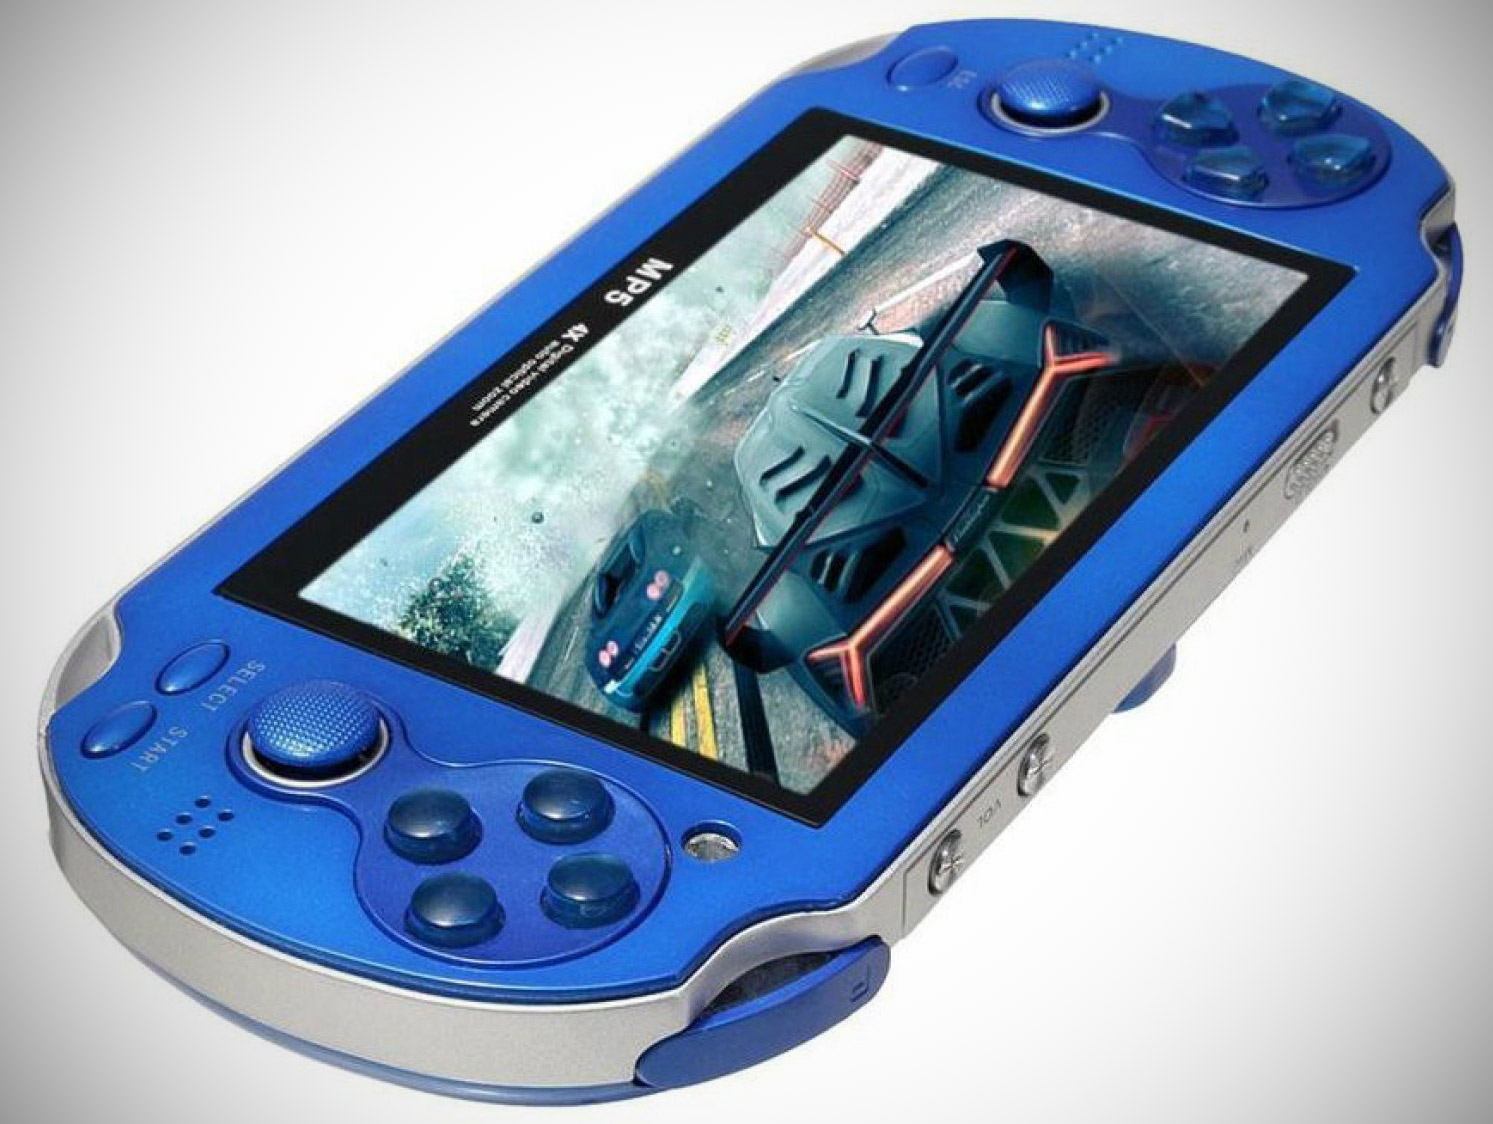 Soulja Boy Video Game Console PS Vita